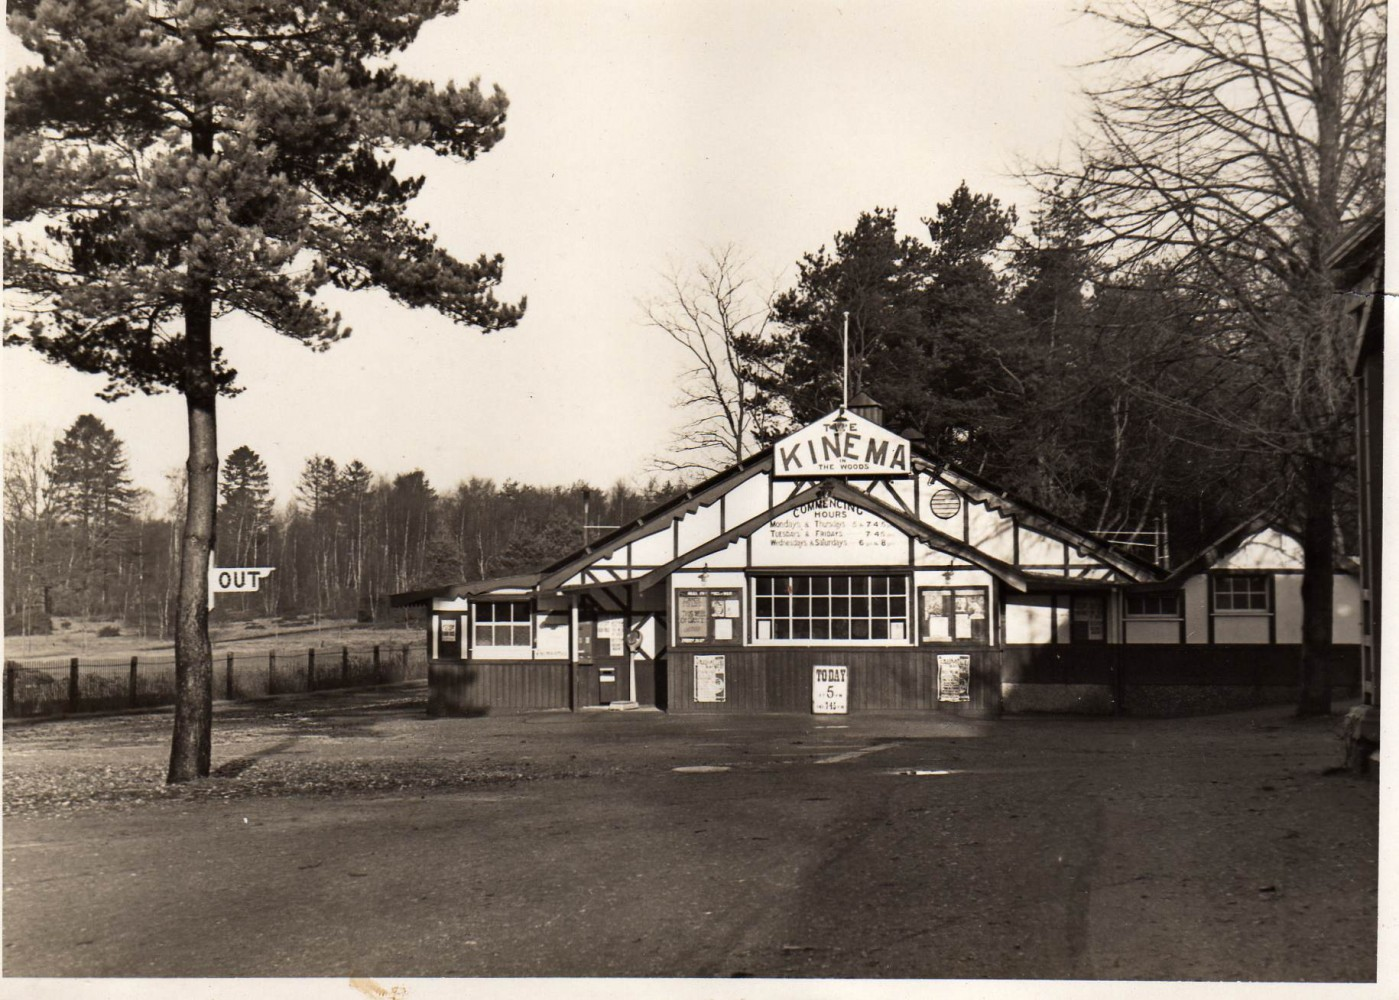 1922 Kinema In The Woods, Woodhall Spa